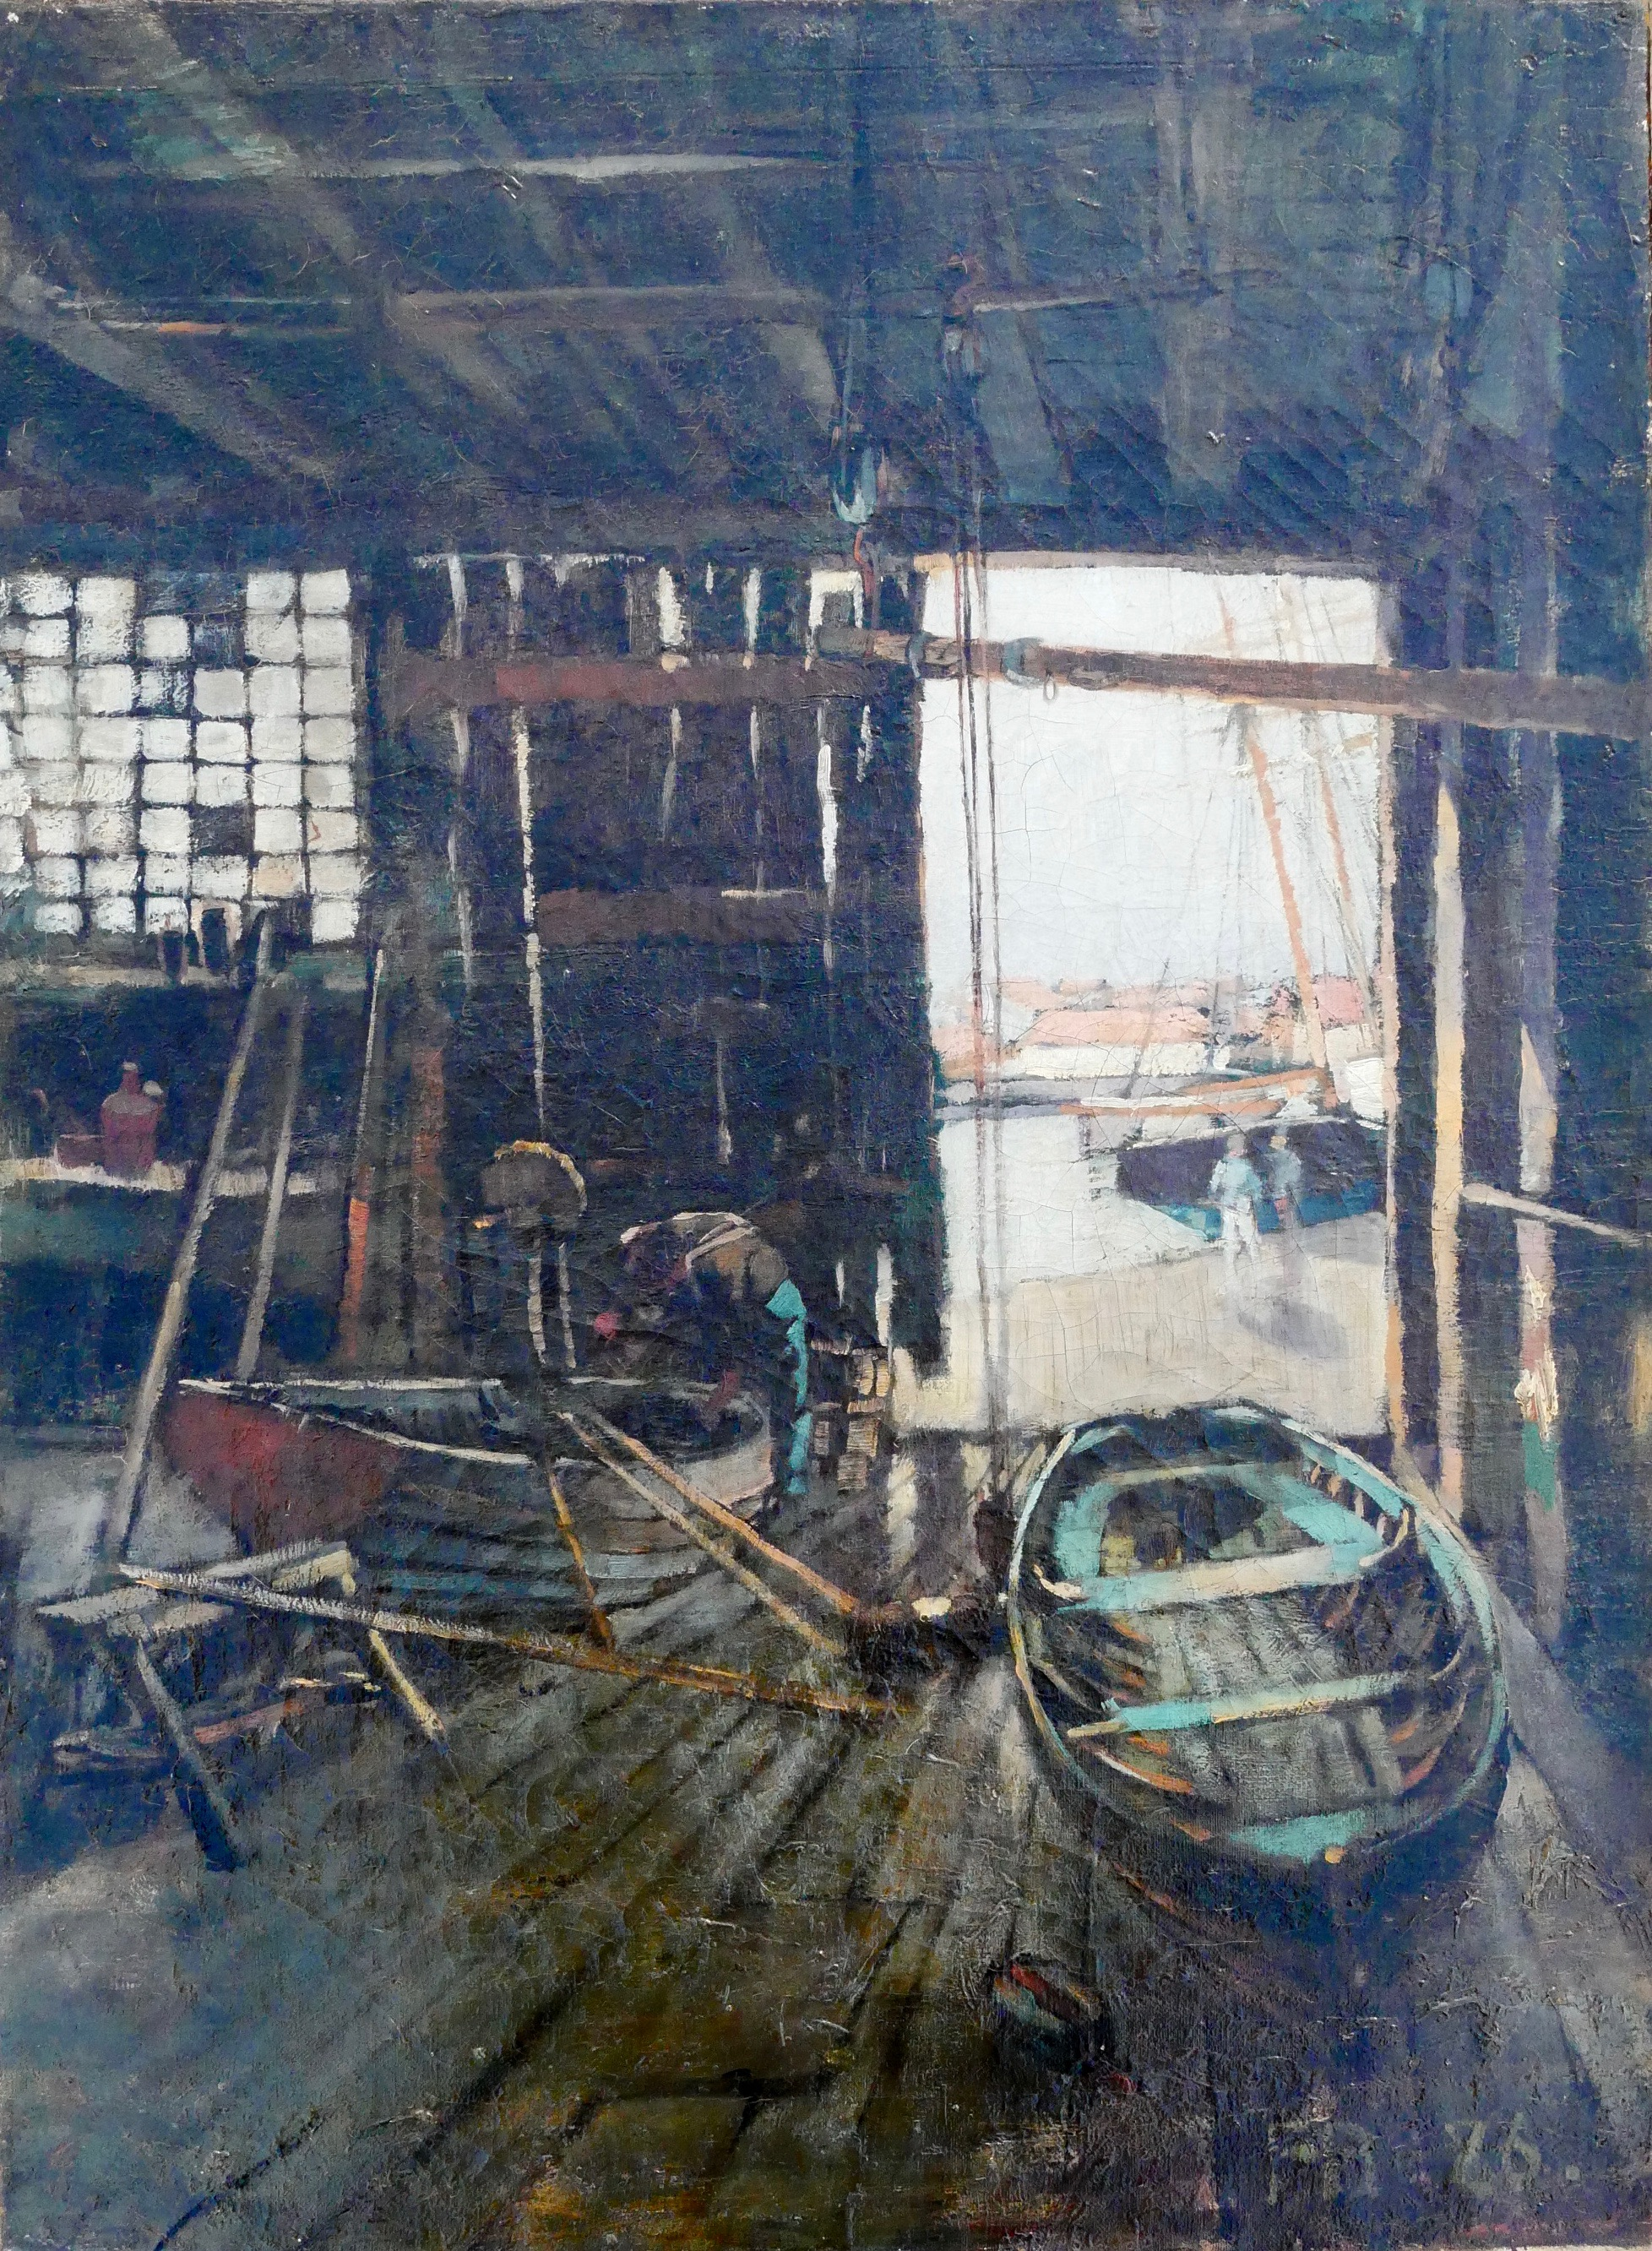 sir frank brangwyn boatshed the canon gallery british 19th 19th 20th modern british european victorian oil watercolour watercolor art dealer uk london oundle